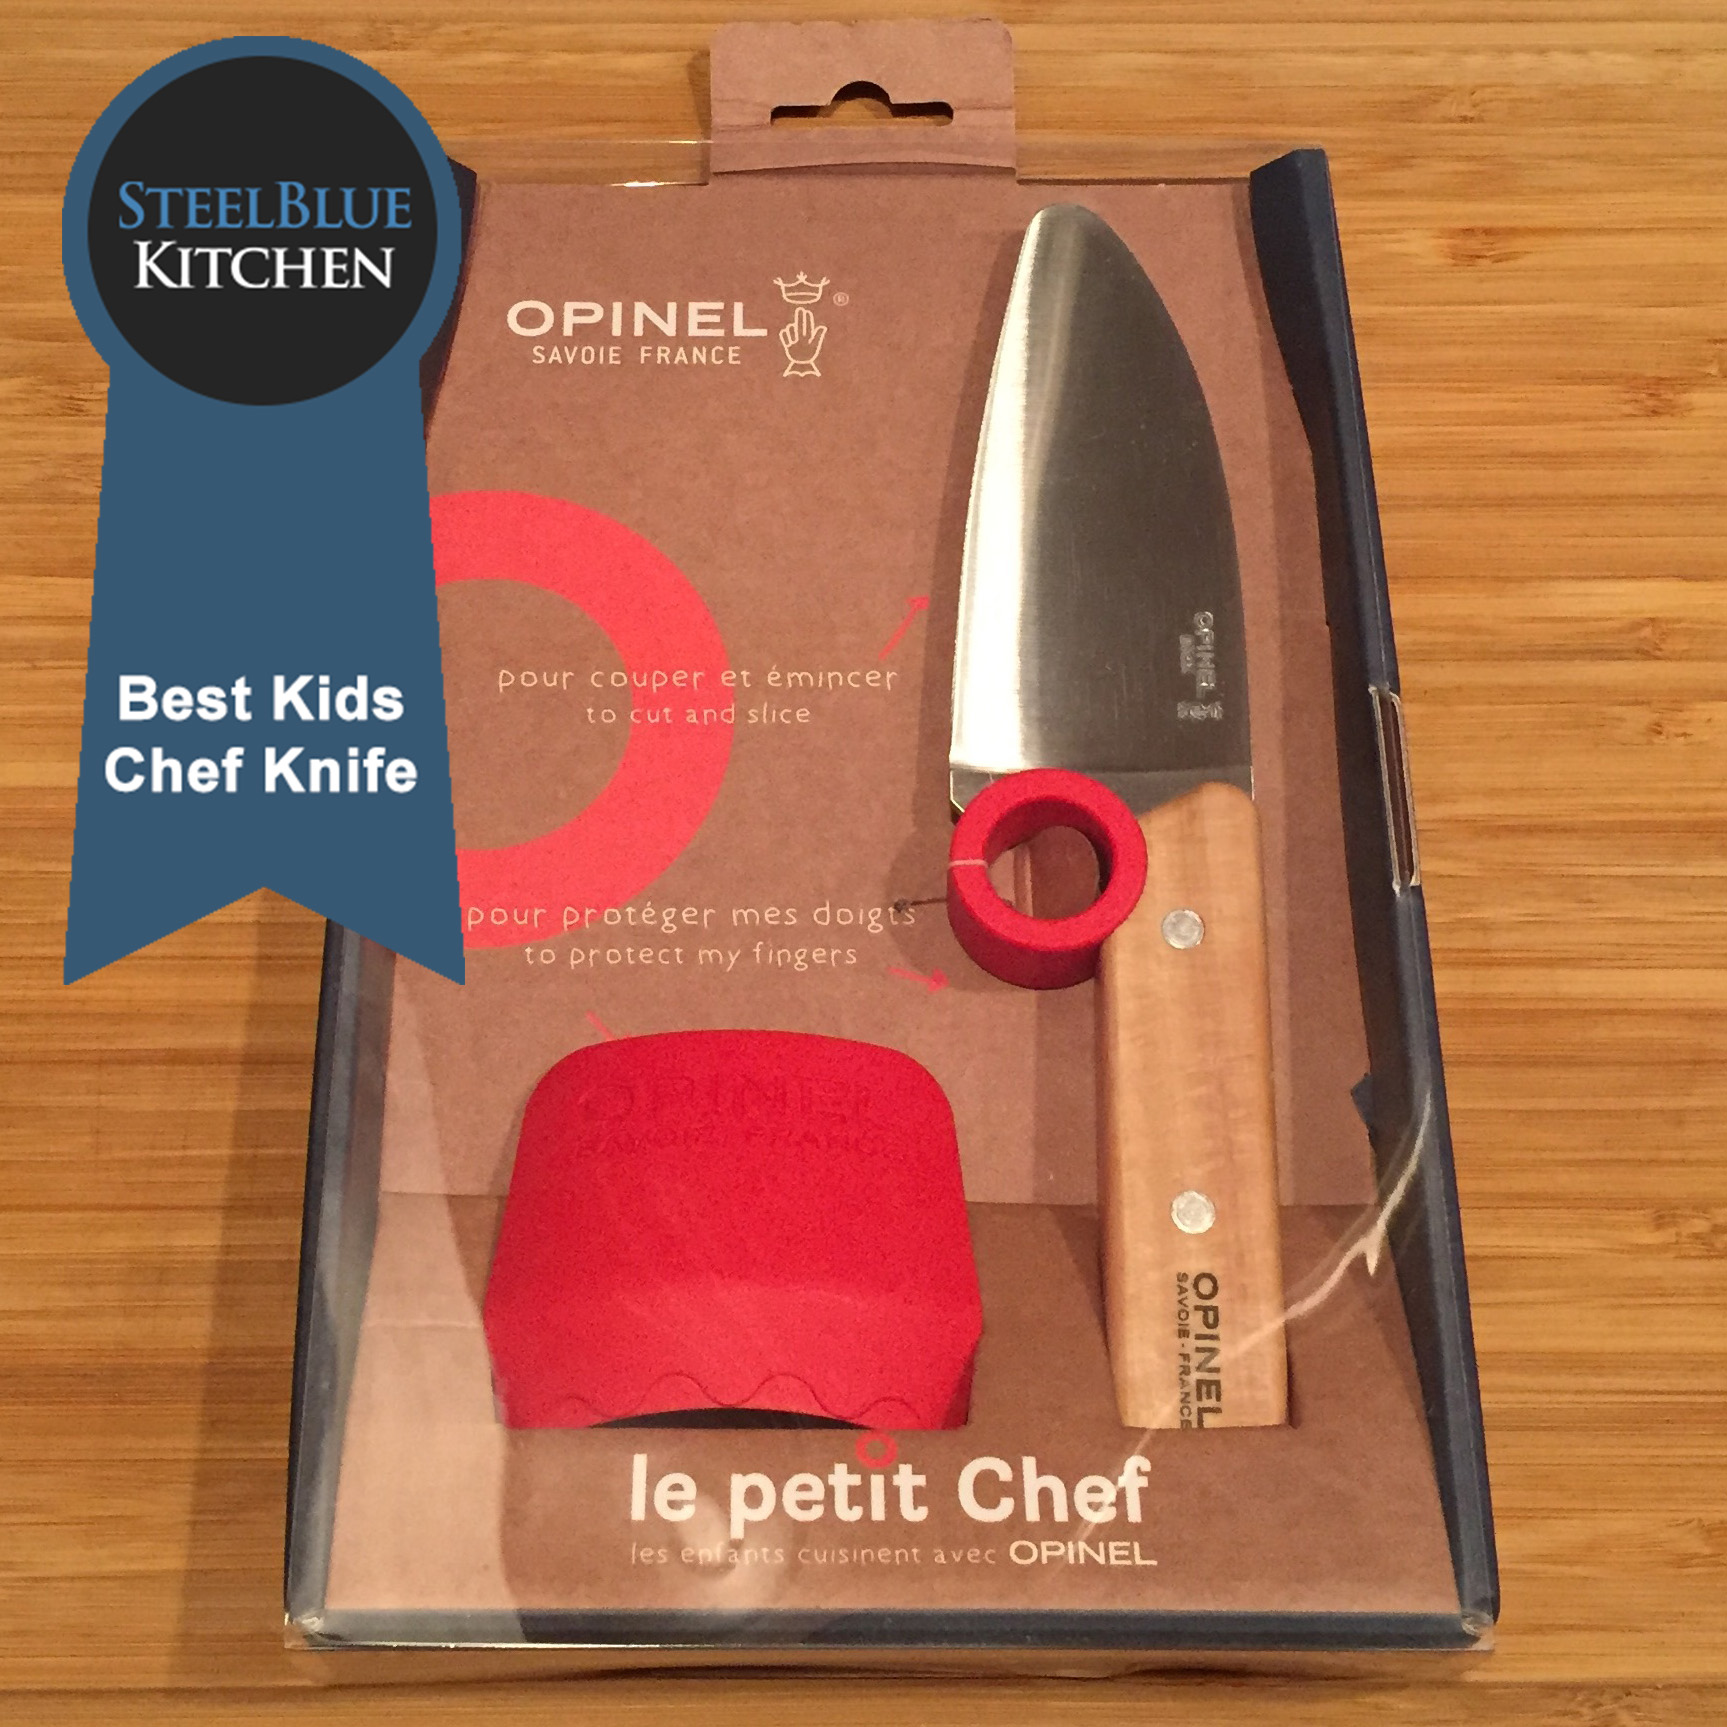 kitchen knives for kids best kids chef knife steelblue kitchen 2220